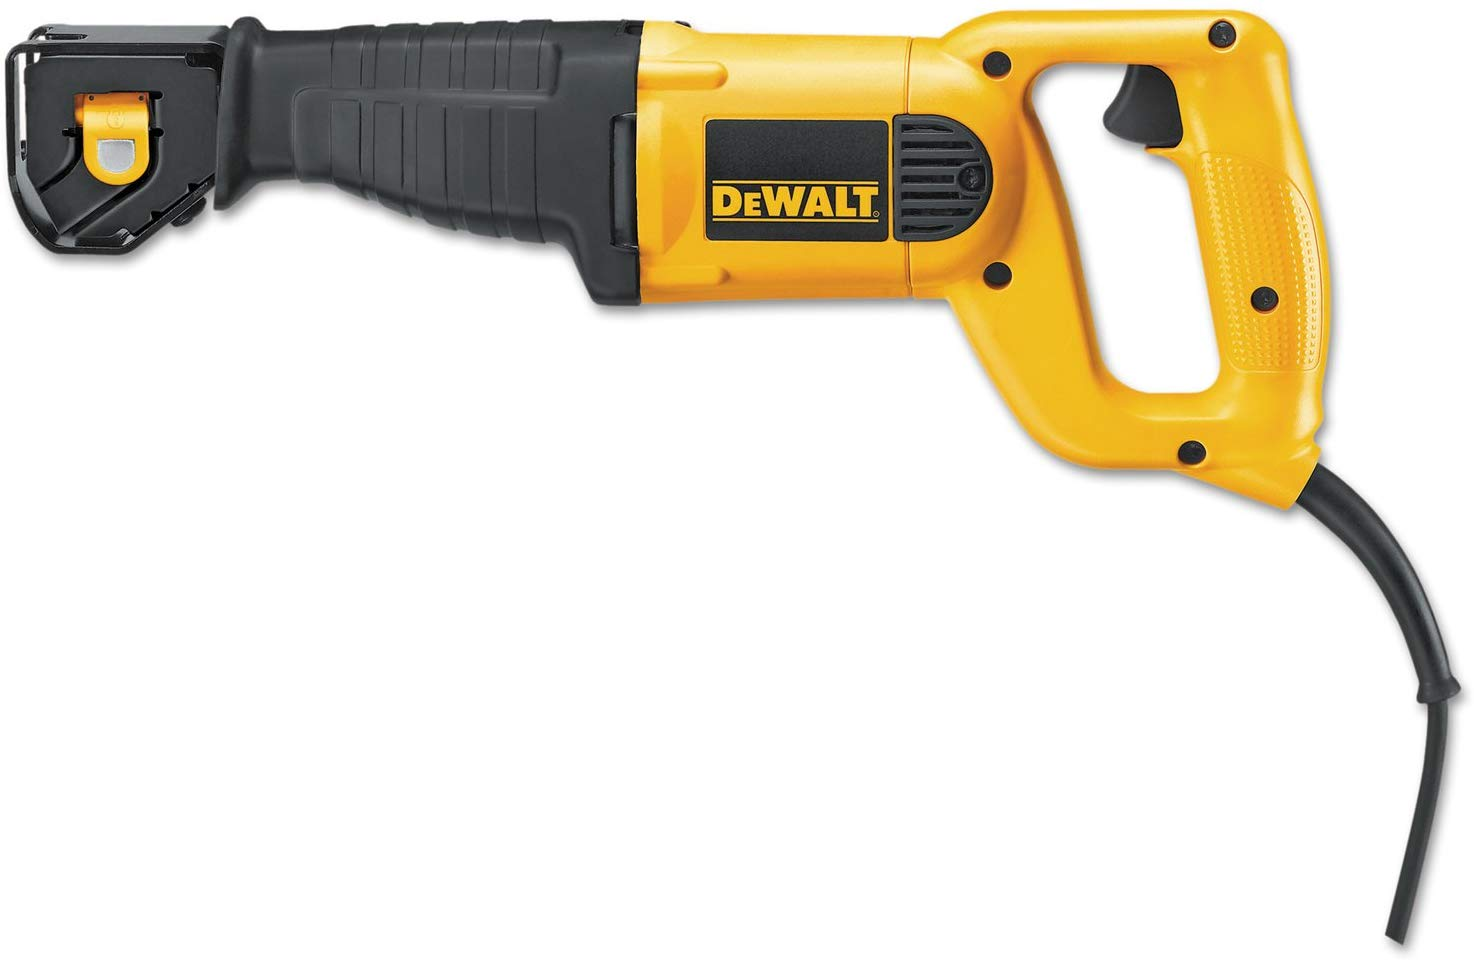 DEWALT DWE304 Reciprocating Saw 10-AMP - Metal Cutting Tool